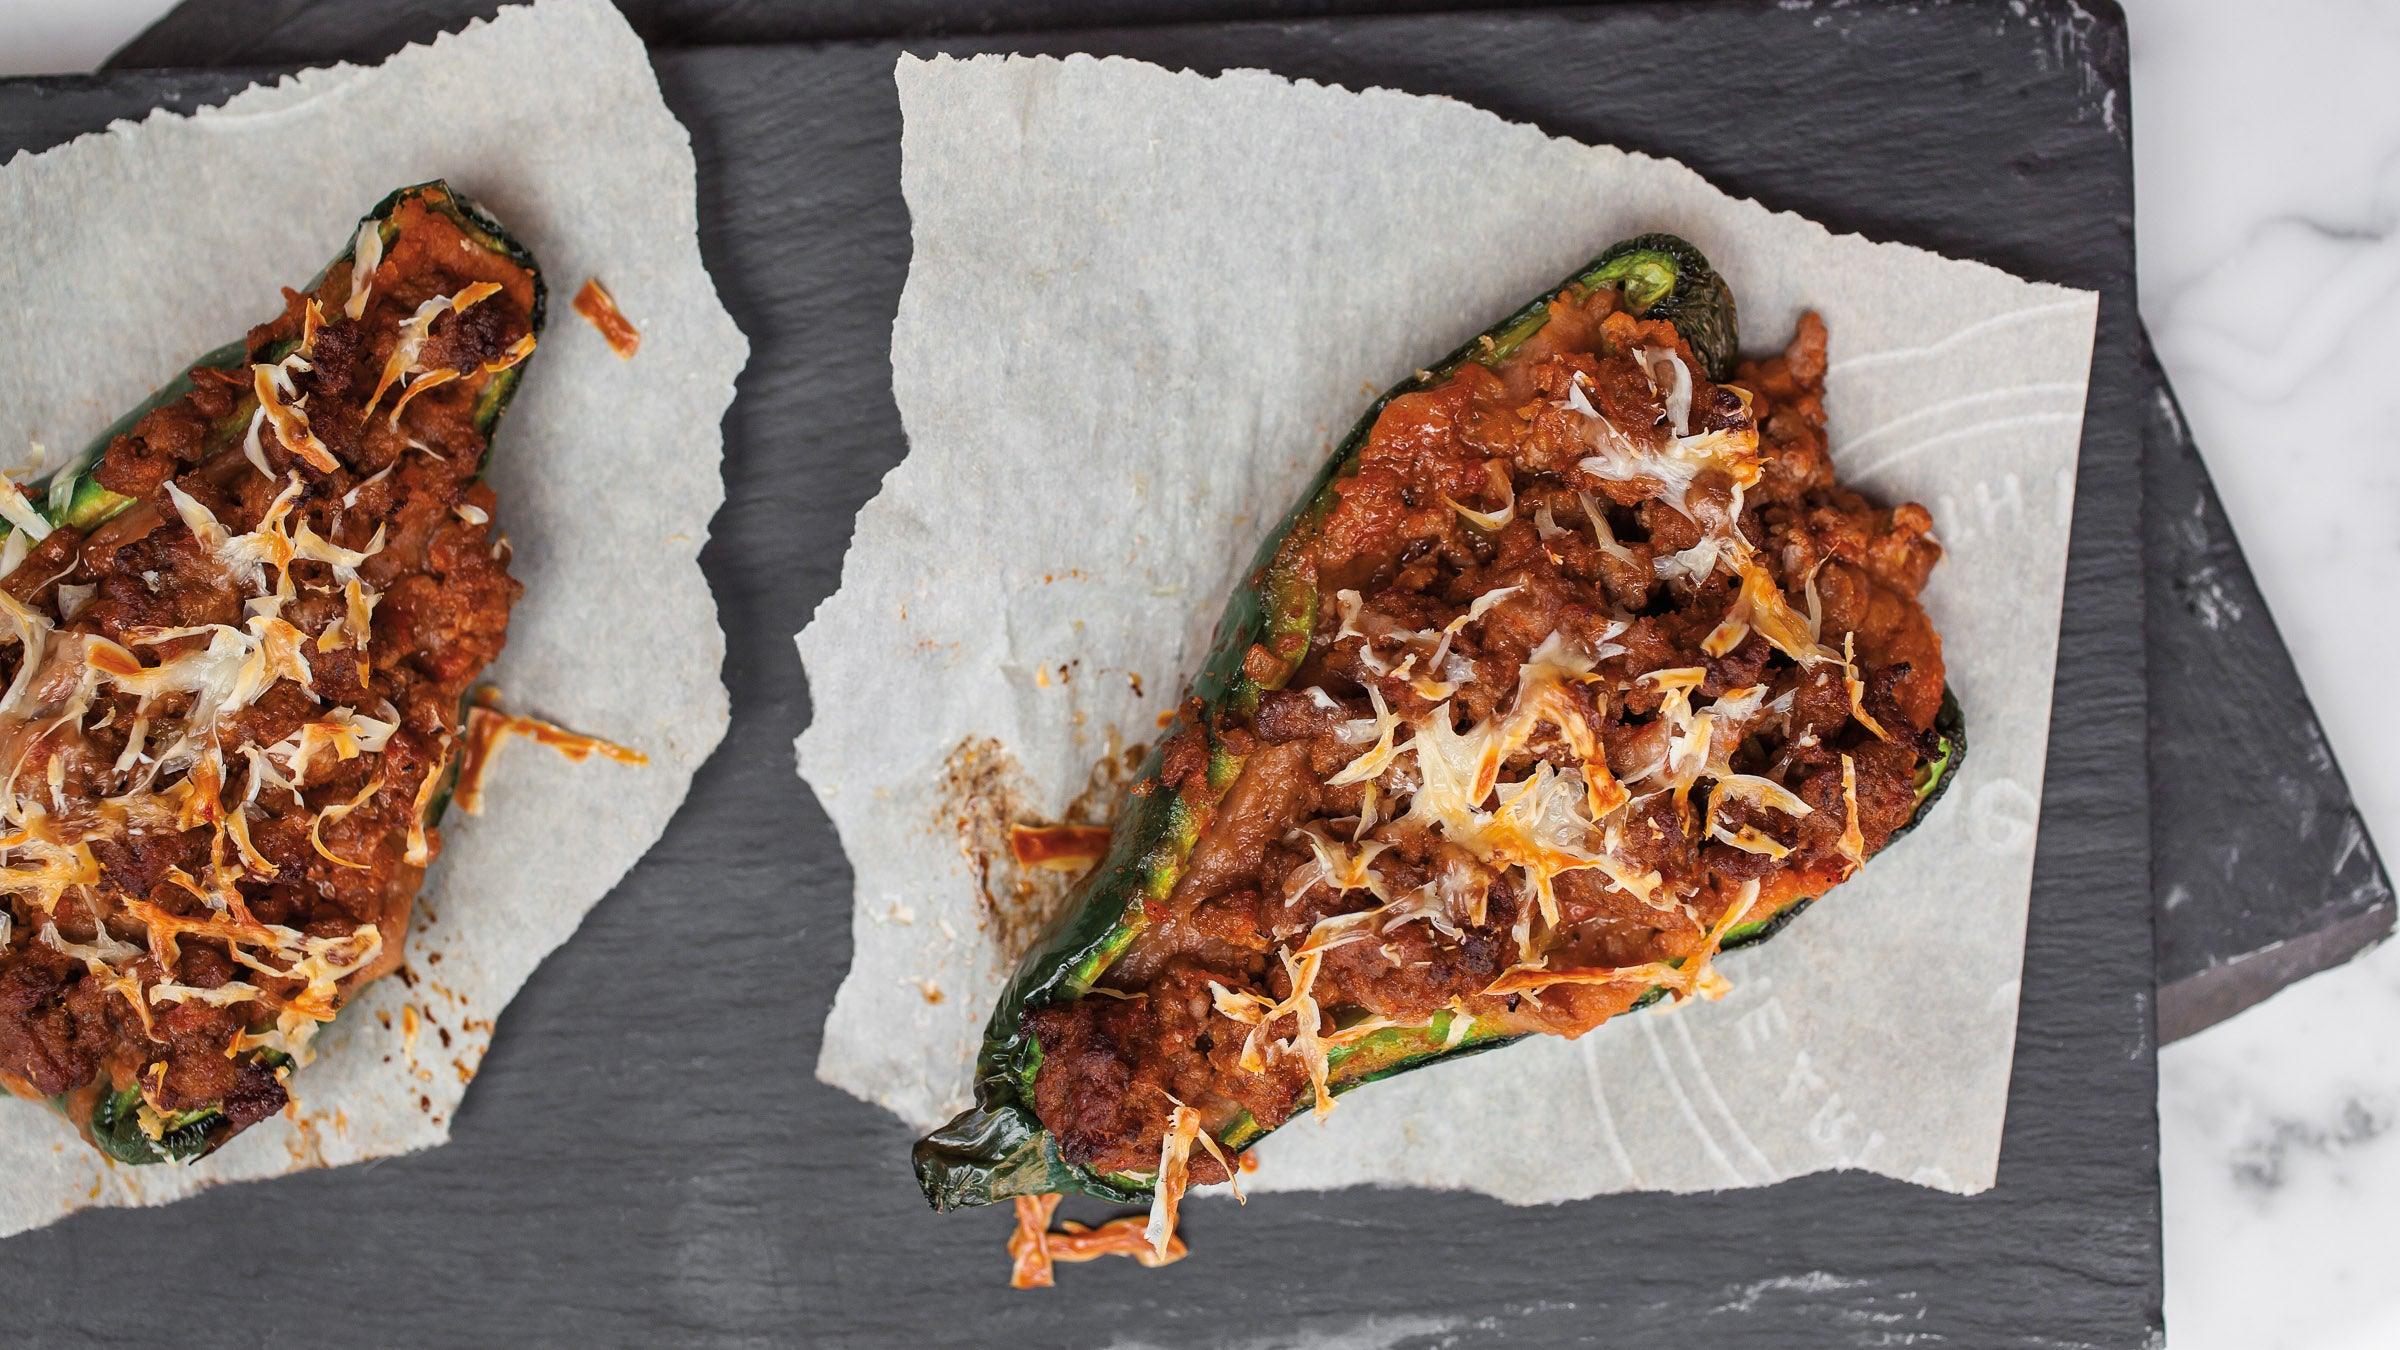 Quick Dinner Recipe: Beefy Stuffed Poblano Peppers